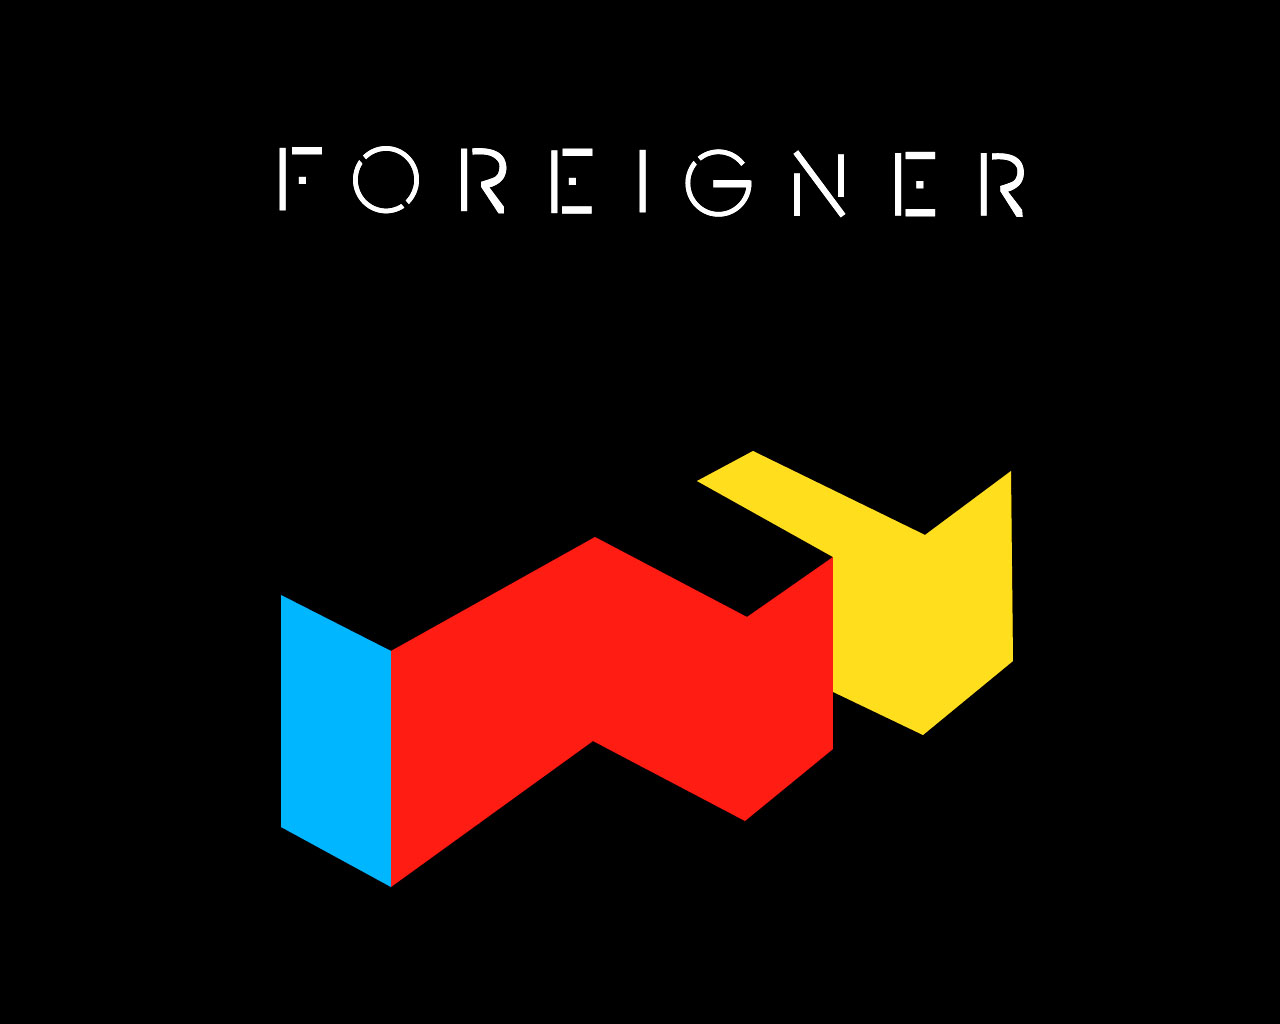 """Le Deblocnot': FOREIGNER -"""" The Story"""" (Part One, 1976 ... 